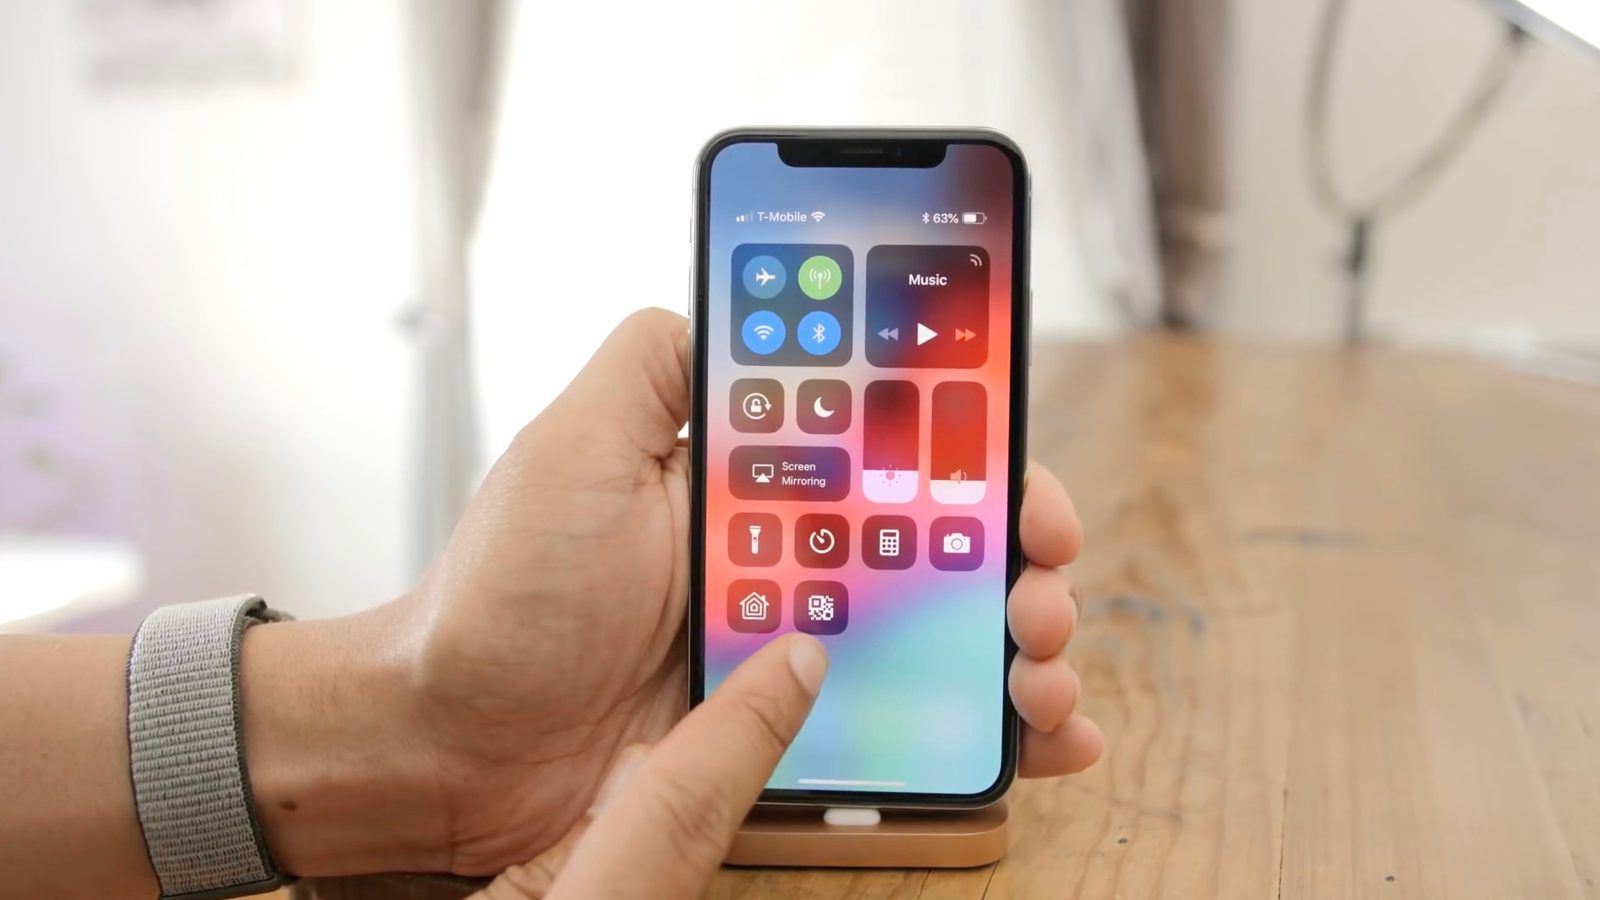 iOS 12: How to use the Control Center scan QR code shortcut